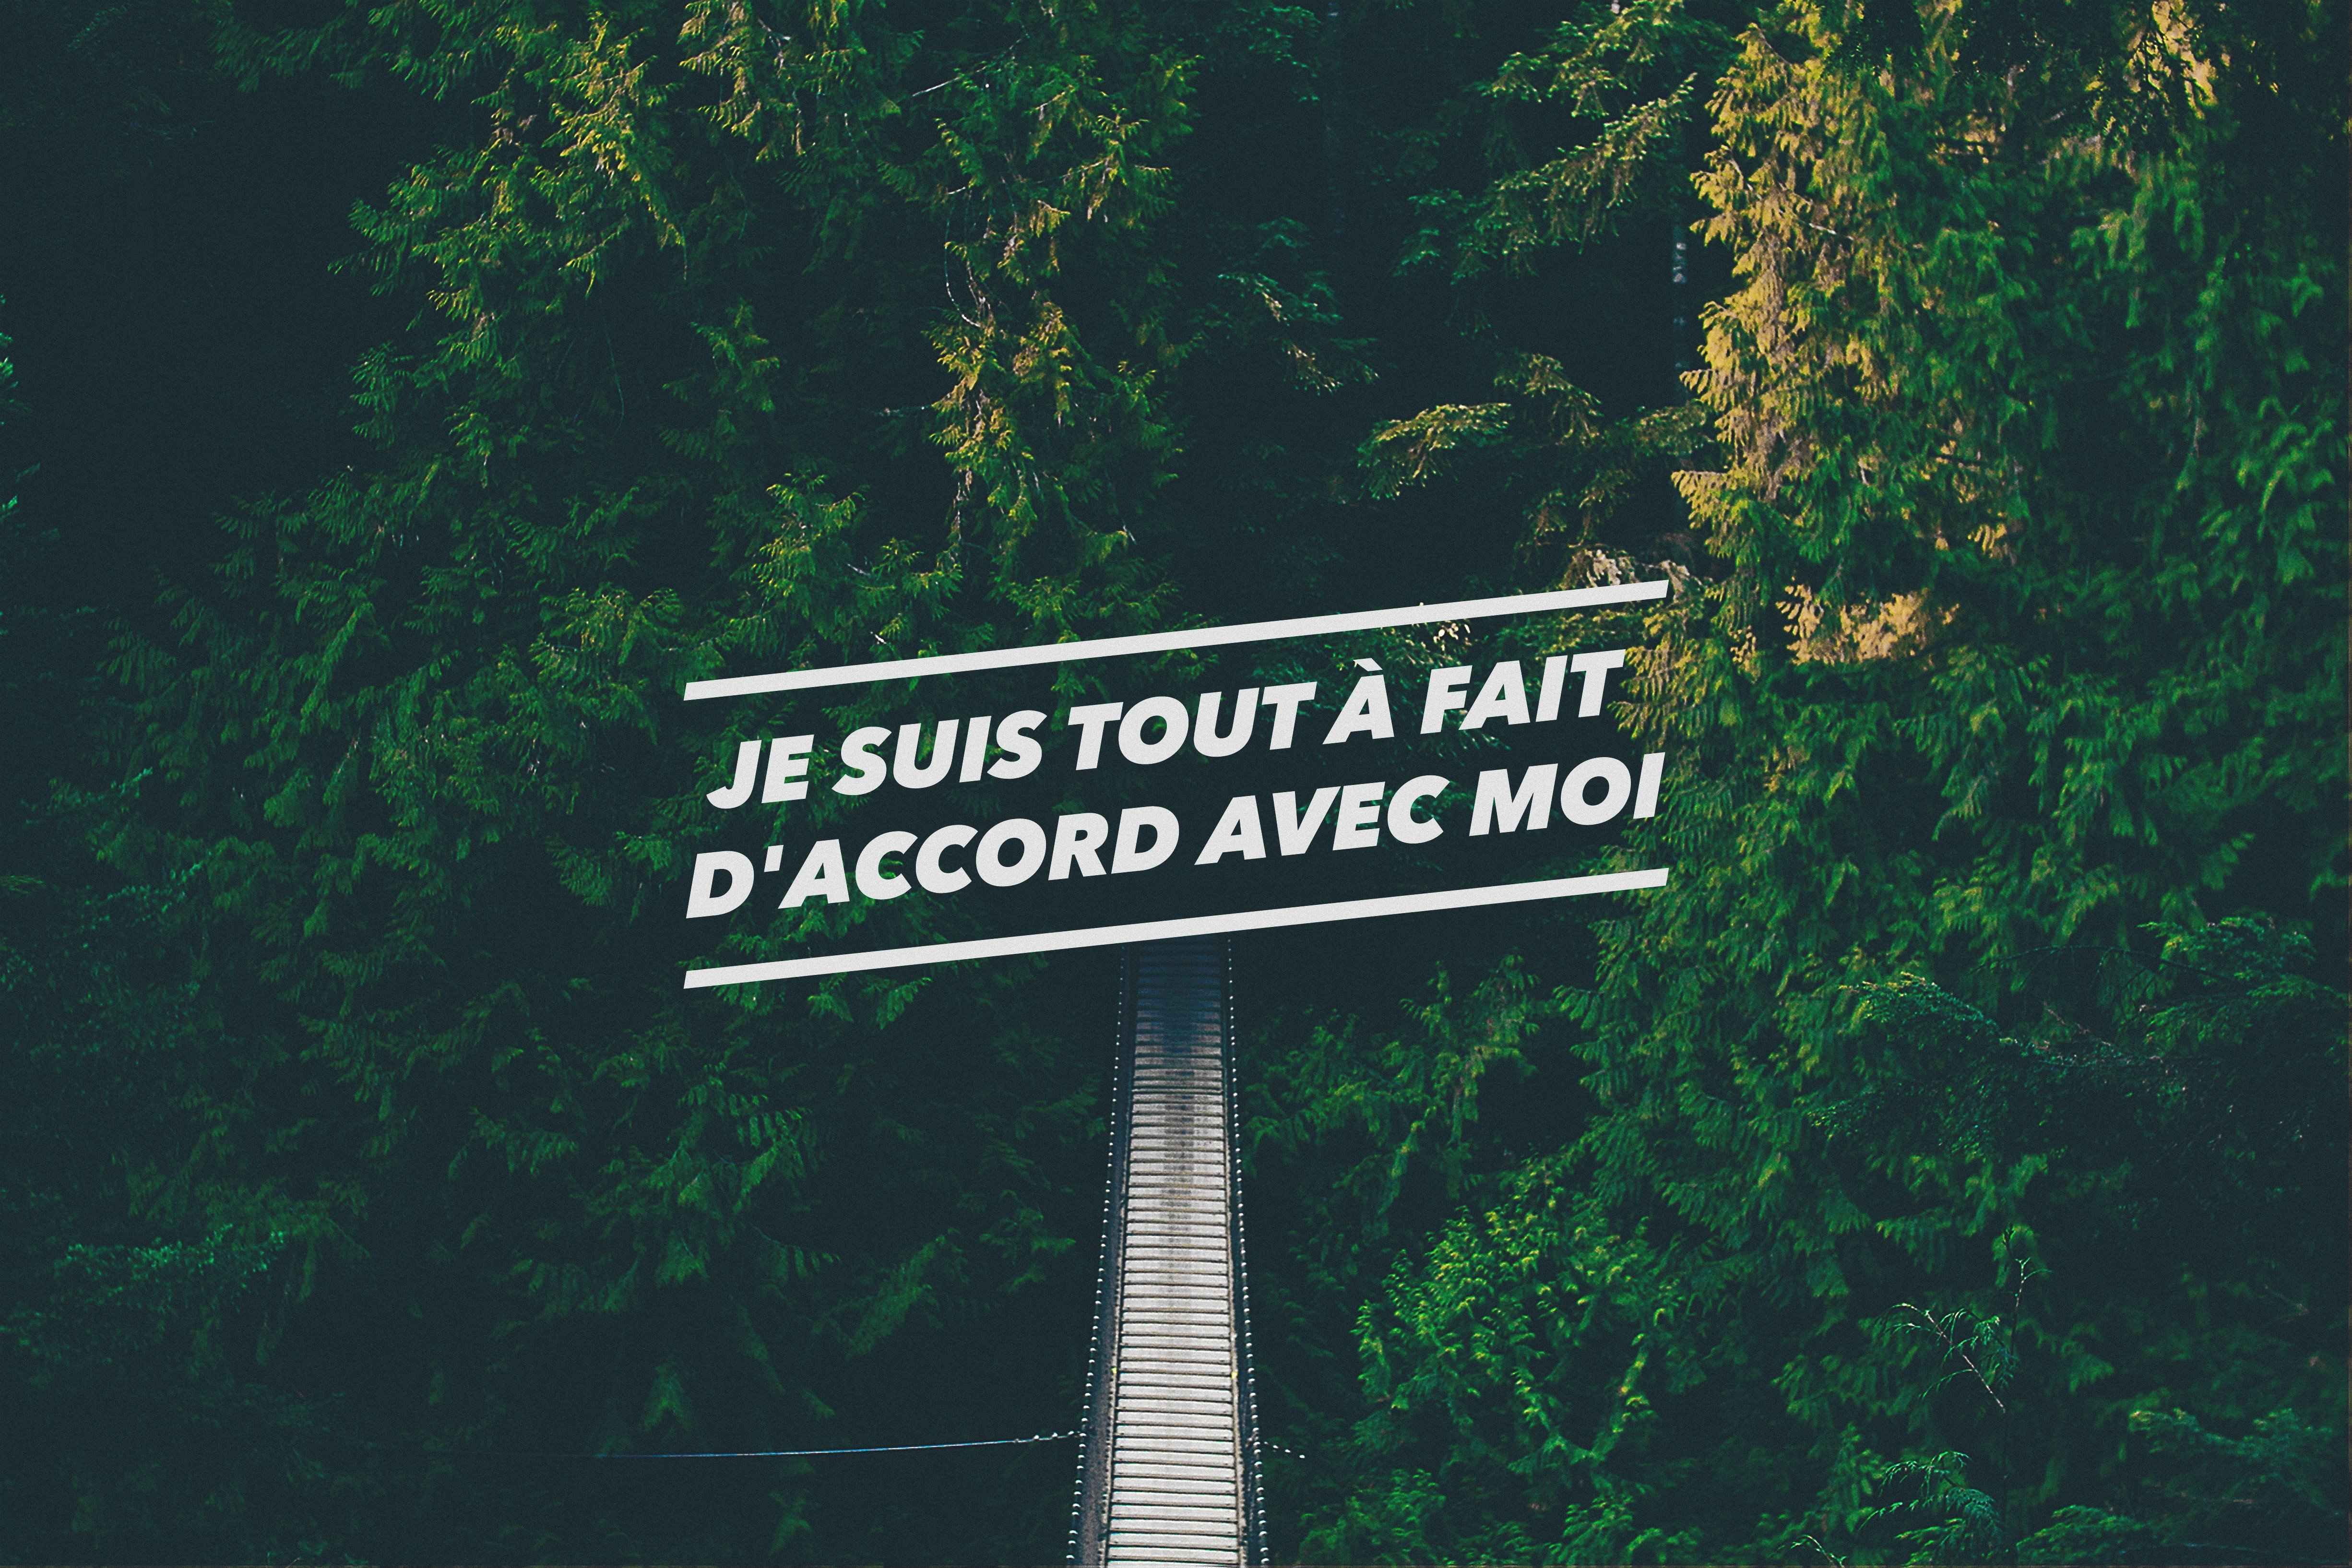 Iphone Quote Wallpaper Hd: French, Forest, Green, Quote, Confidence, Bridge